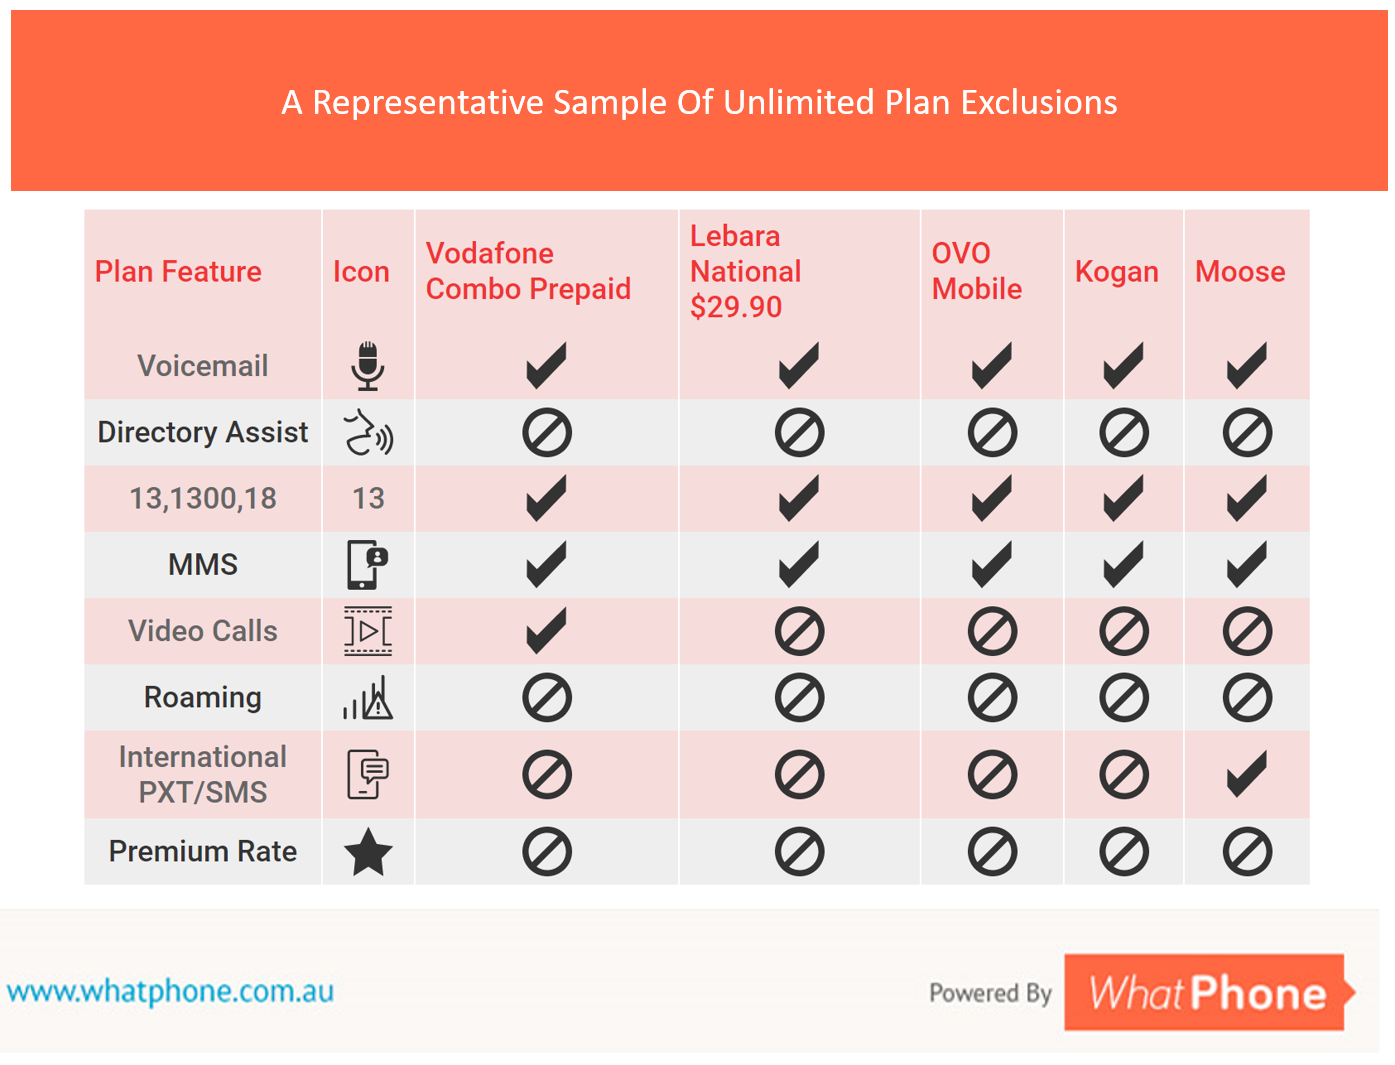 : Unlimited Plan EXCLUSIONS 17.10.17. A representative sample of what you'll pay extra for in some Unlimited Phone Plans.